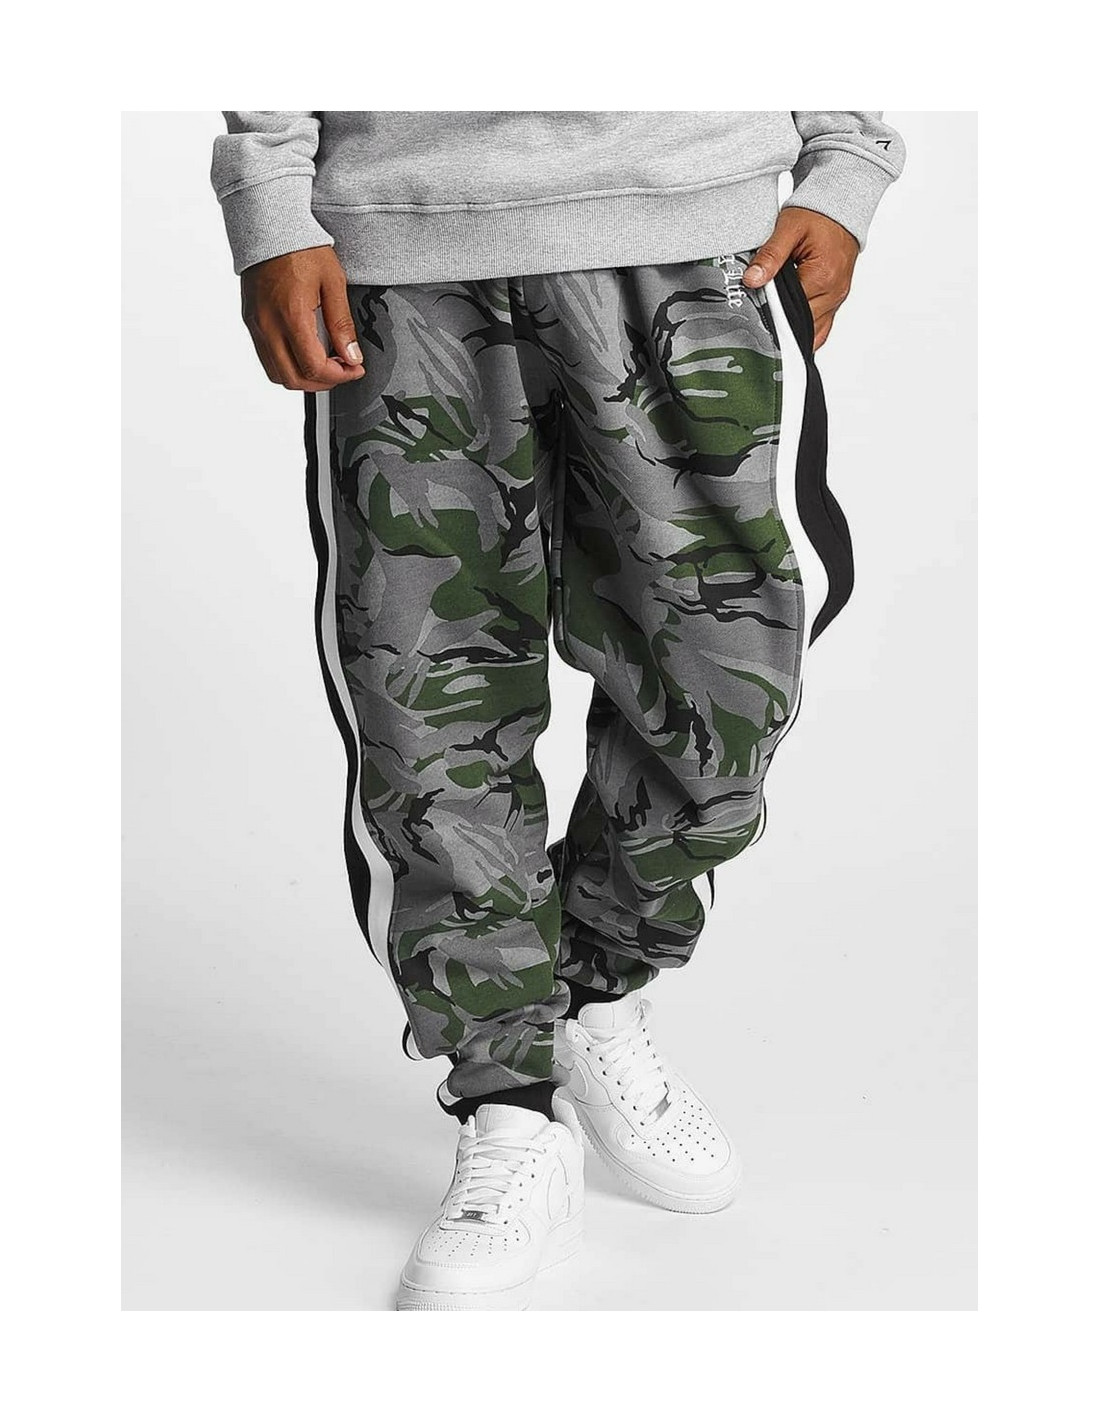 Thug Life Sweat Pant Lecter Black Camo